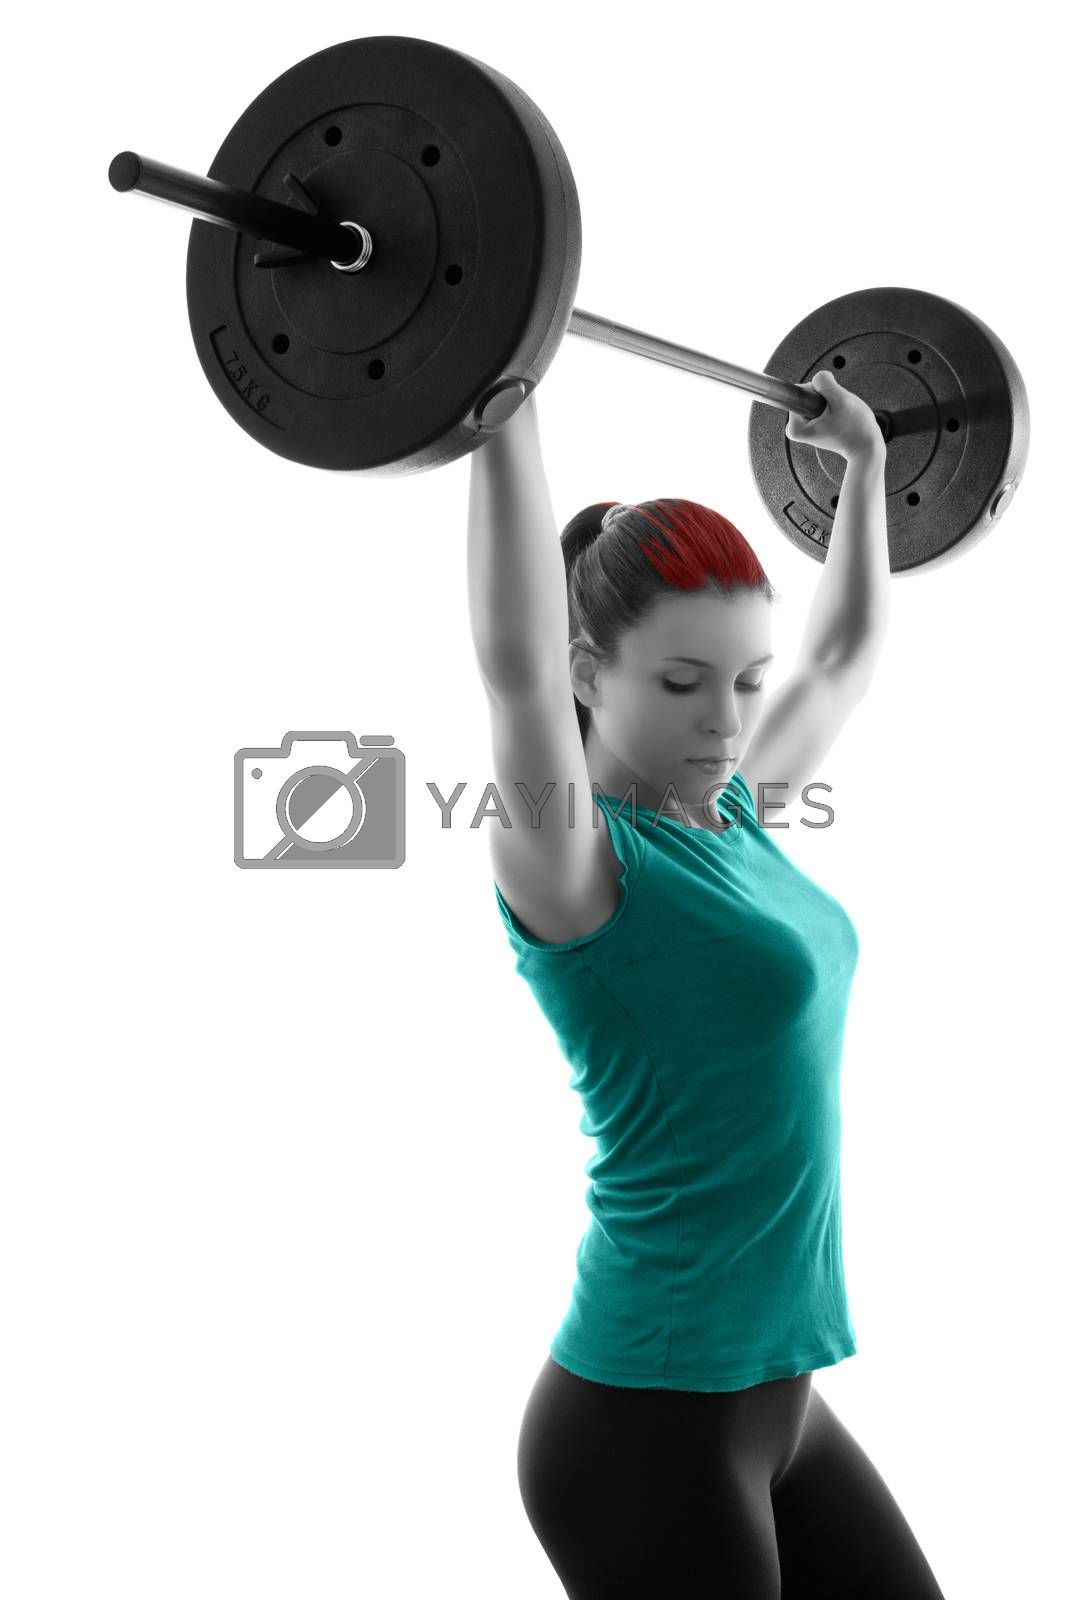 Fit attractive young woman working out with a barbell, doing shoulder press, backlit silhouette studio shot isolated on white background. Fitness and healthy lifestyle concept.